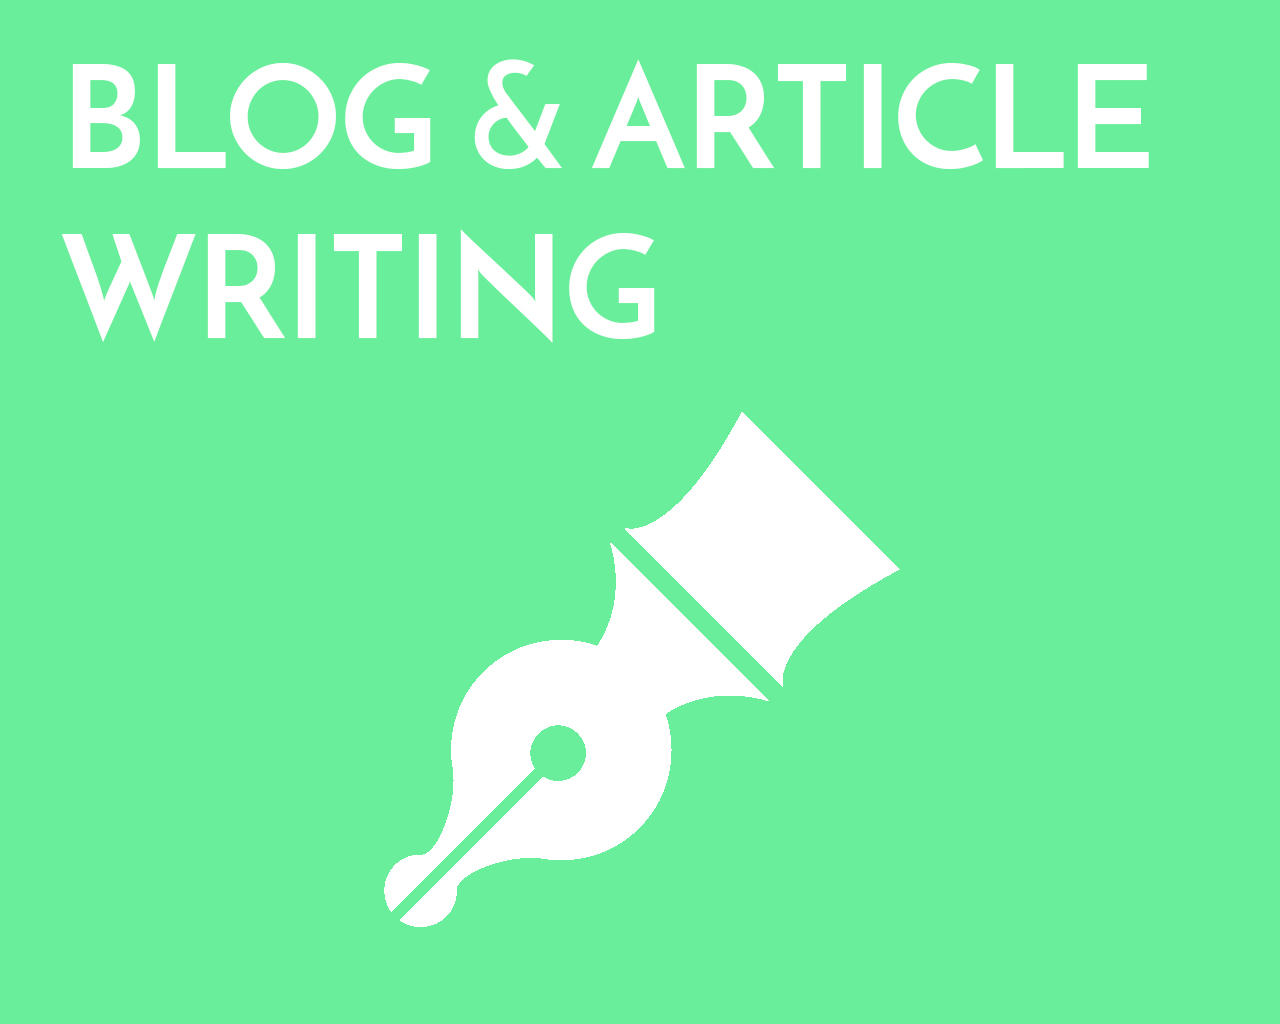 Blog & Article Writing by emilyshore - 73474